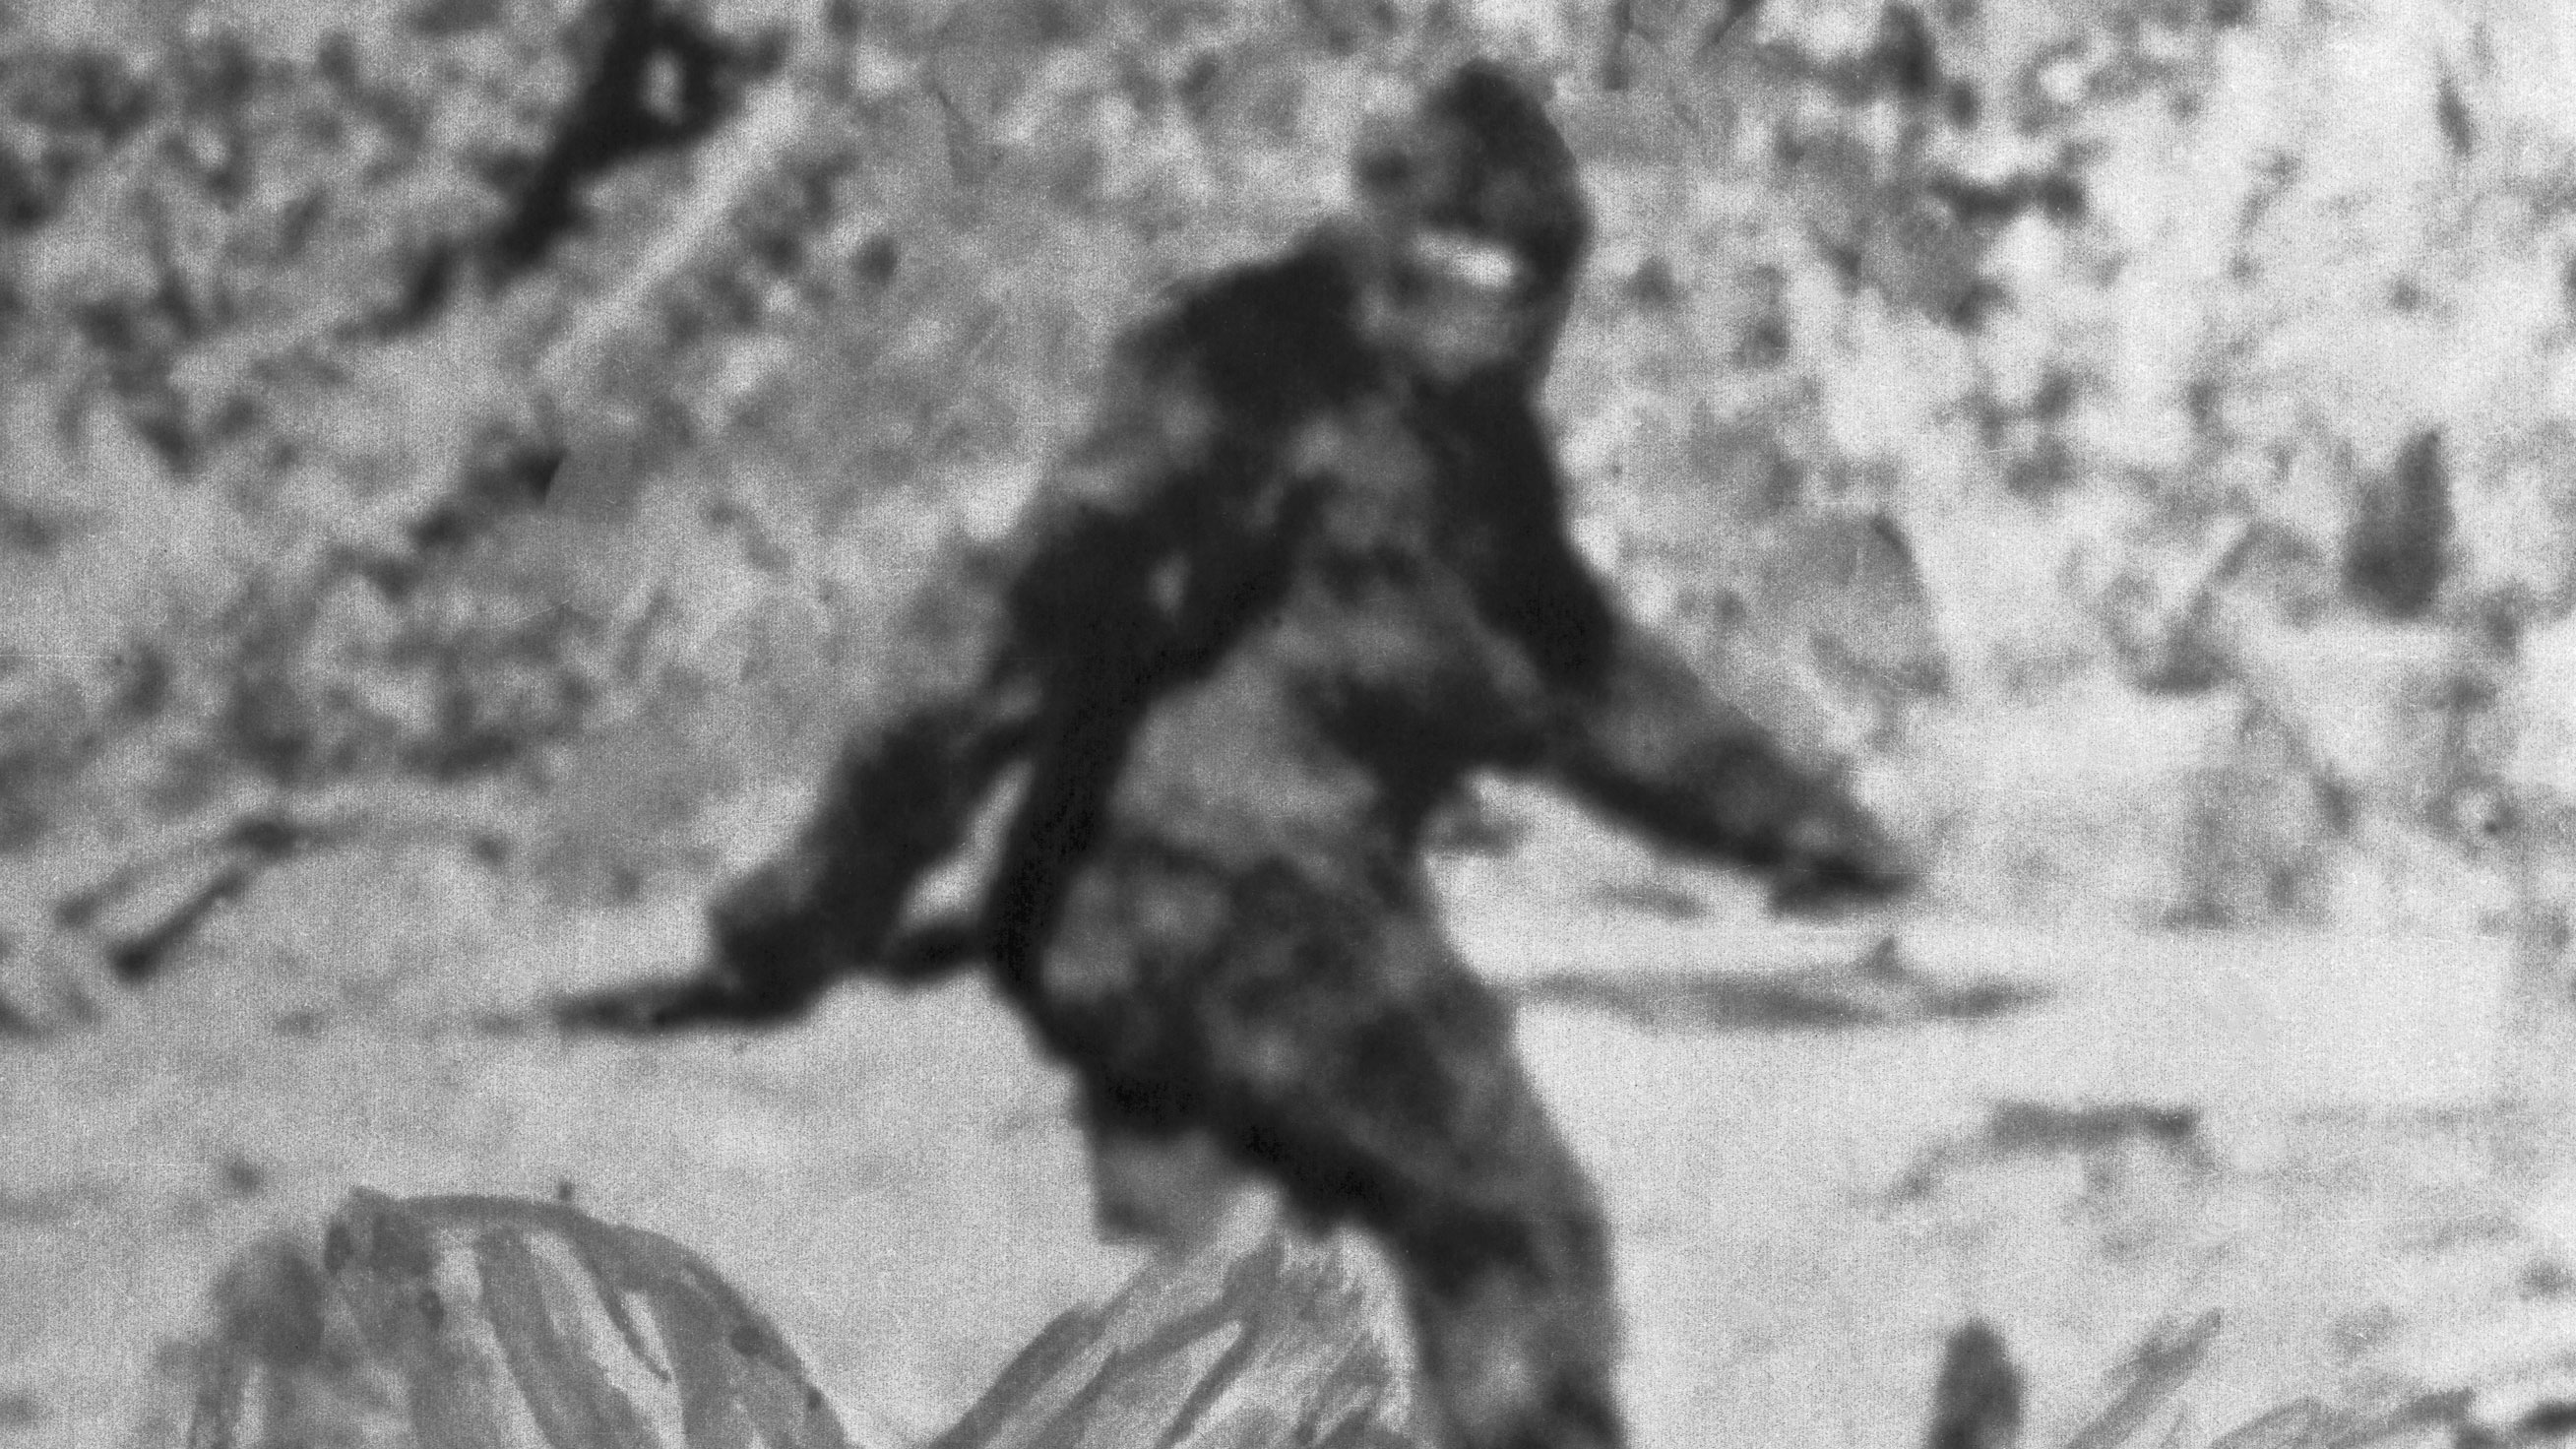 The mythical Bigfoot